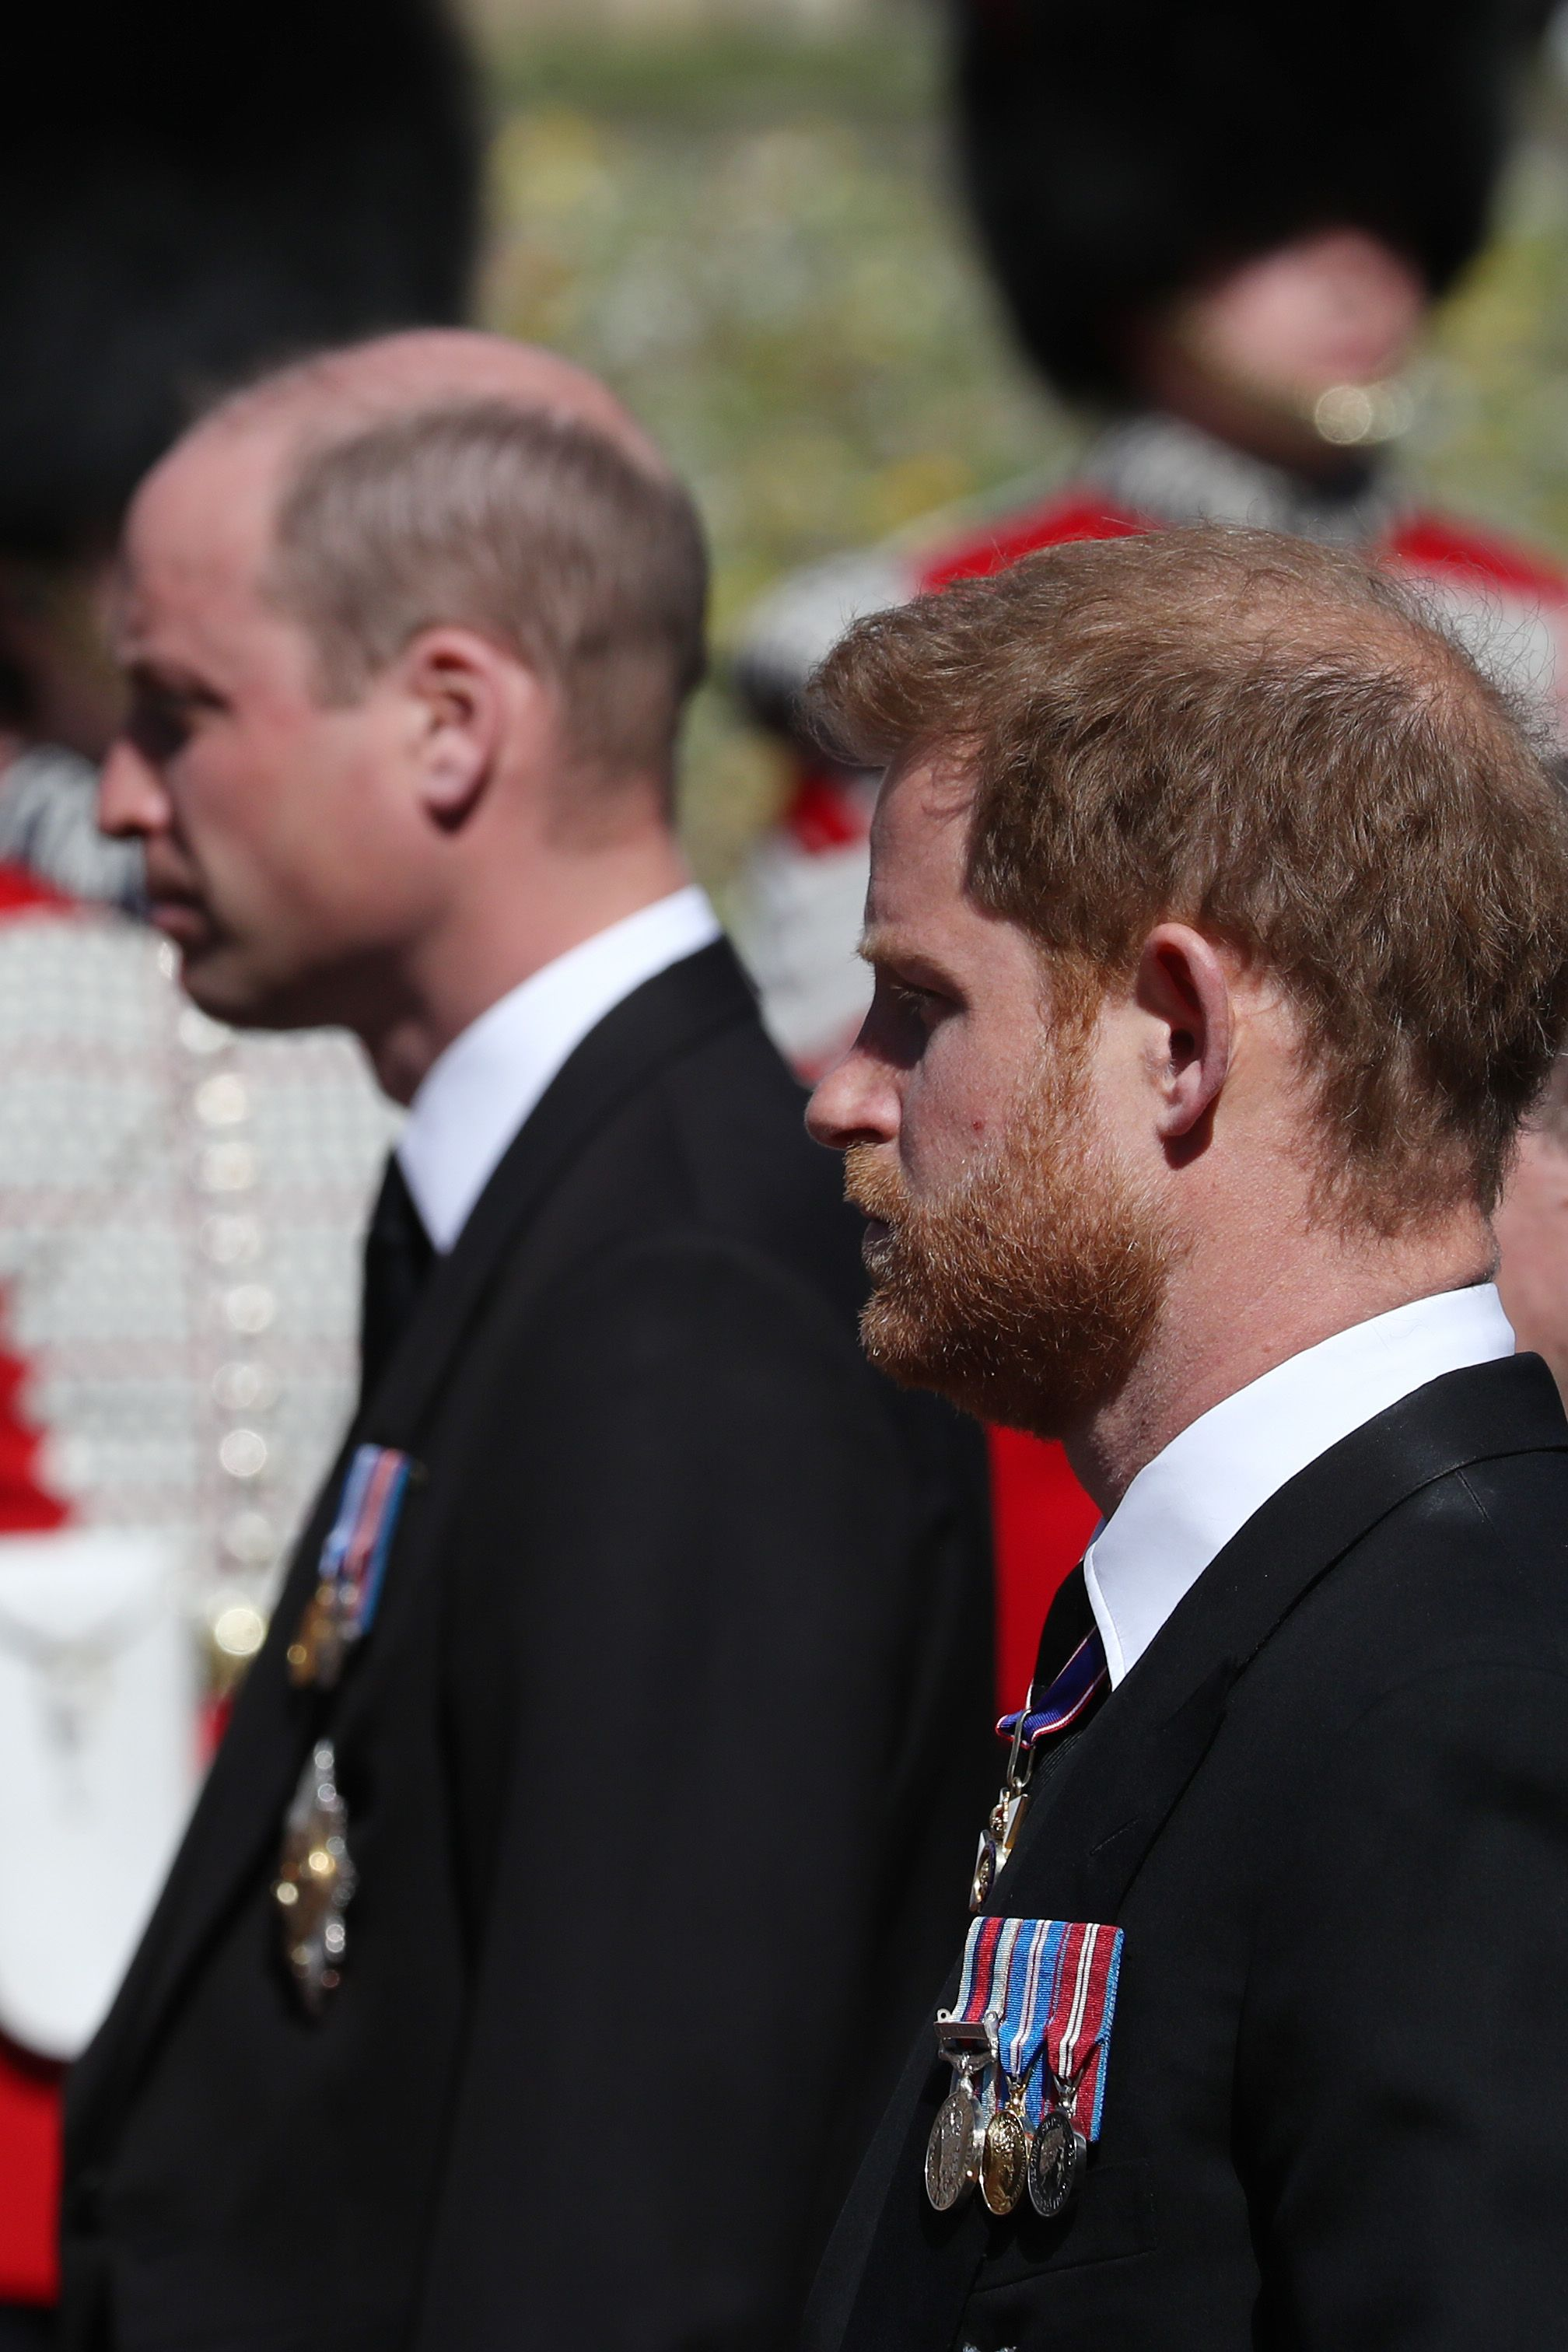 Prince Harry Reunites with Prince William and Kate Middleton Following Prince Philip's Funeral